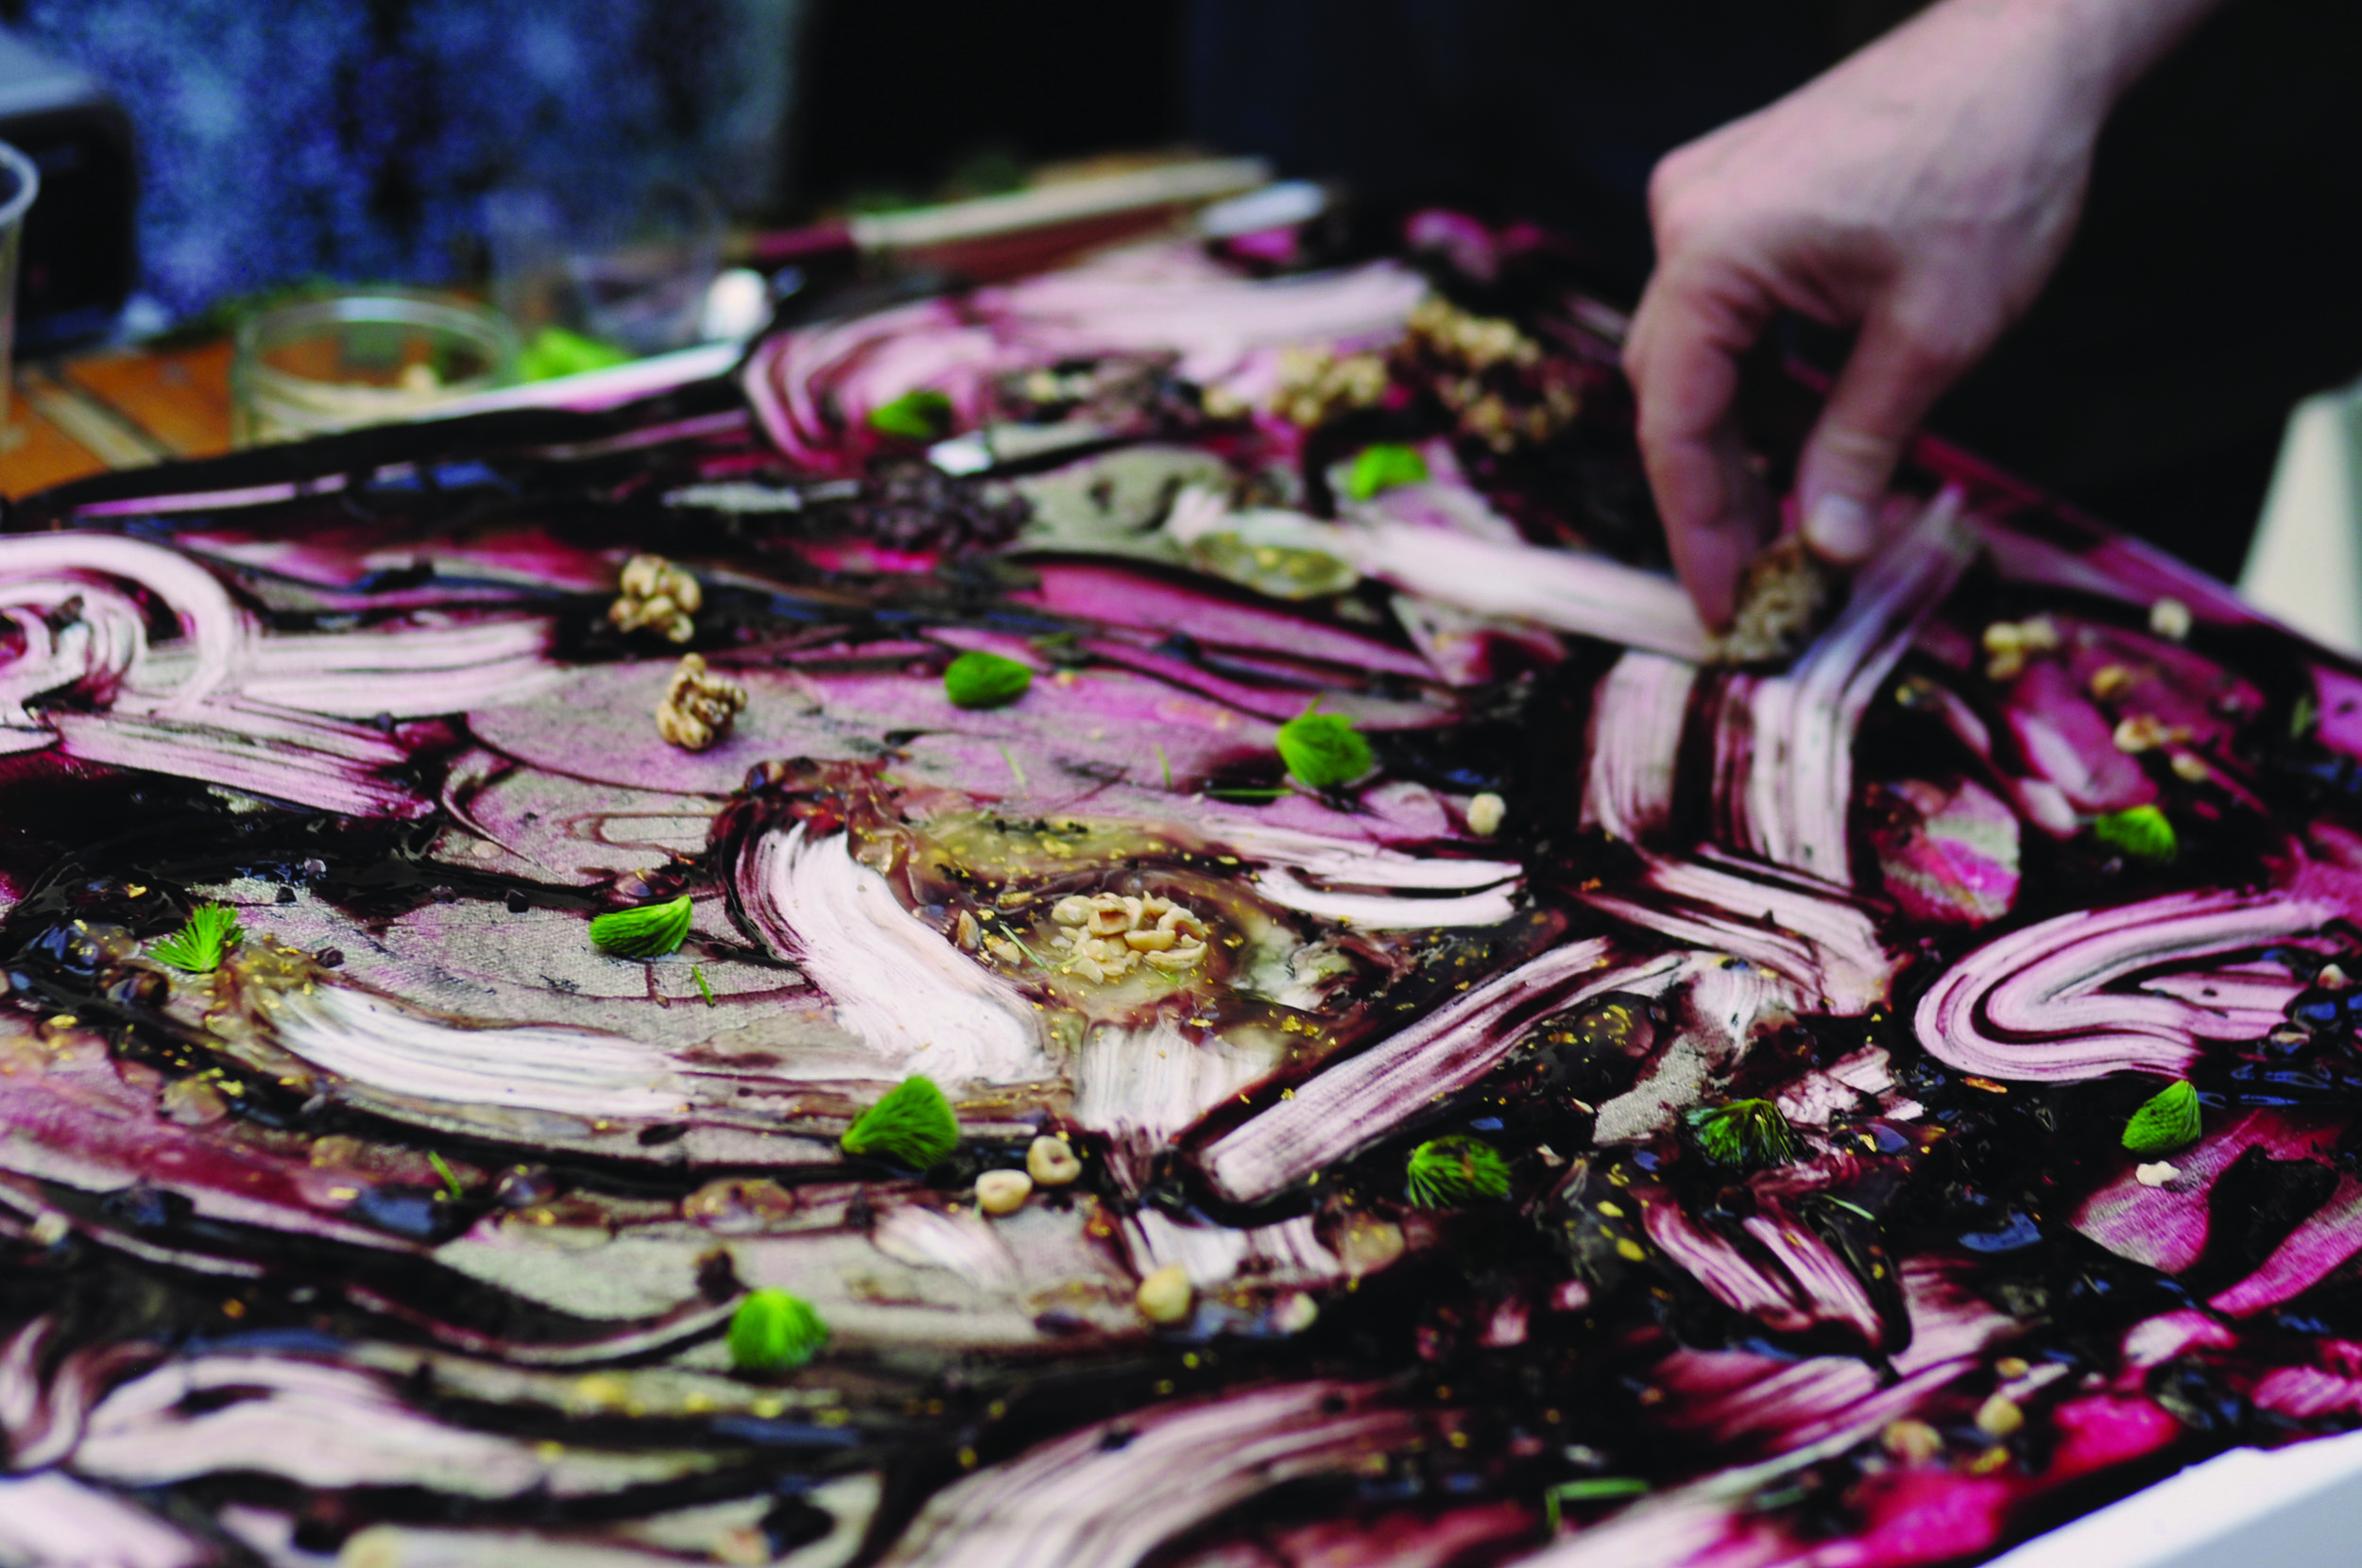 Food Painting, Daniel Ospina and Chris Lloyd, photograph by Isadora Lima de Oliveira